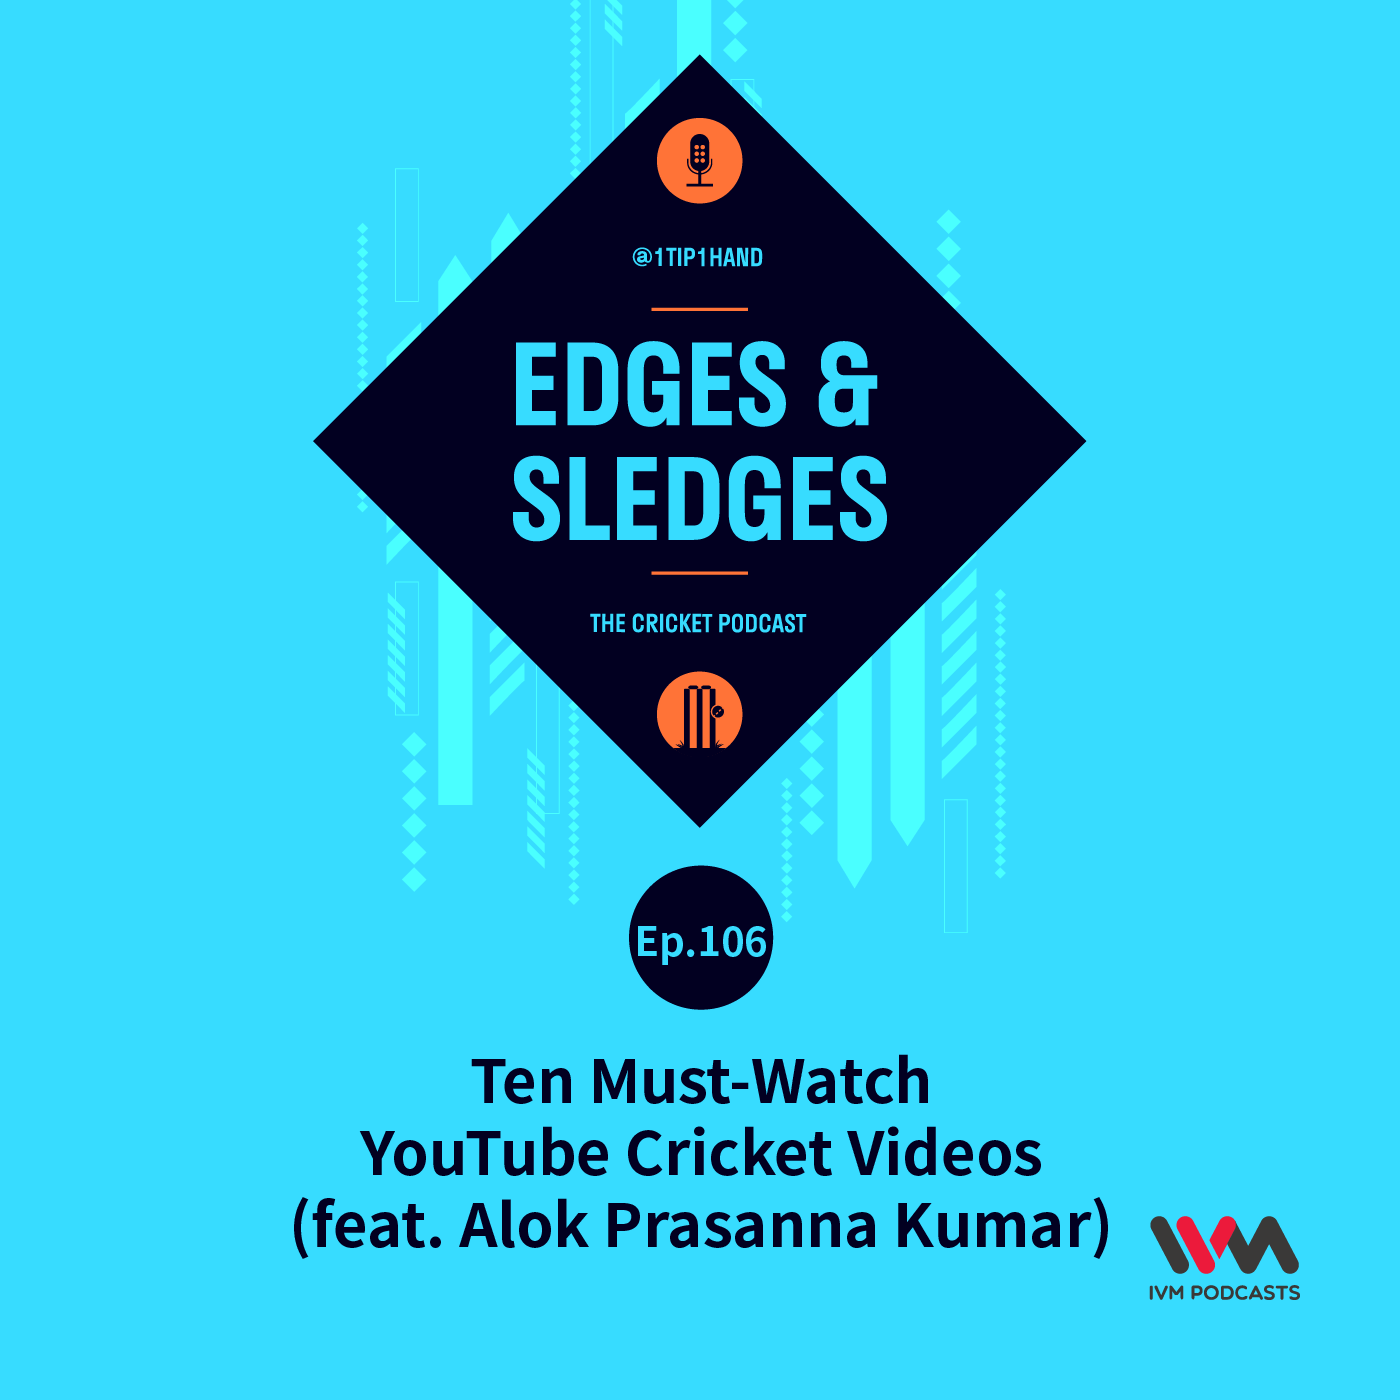 Ep. 106: Ten Must-Watch YouTube Cricket Videos (feat. Alok Prasanna Kumar)